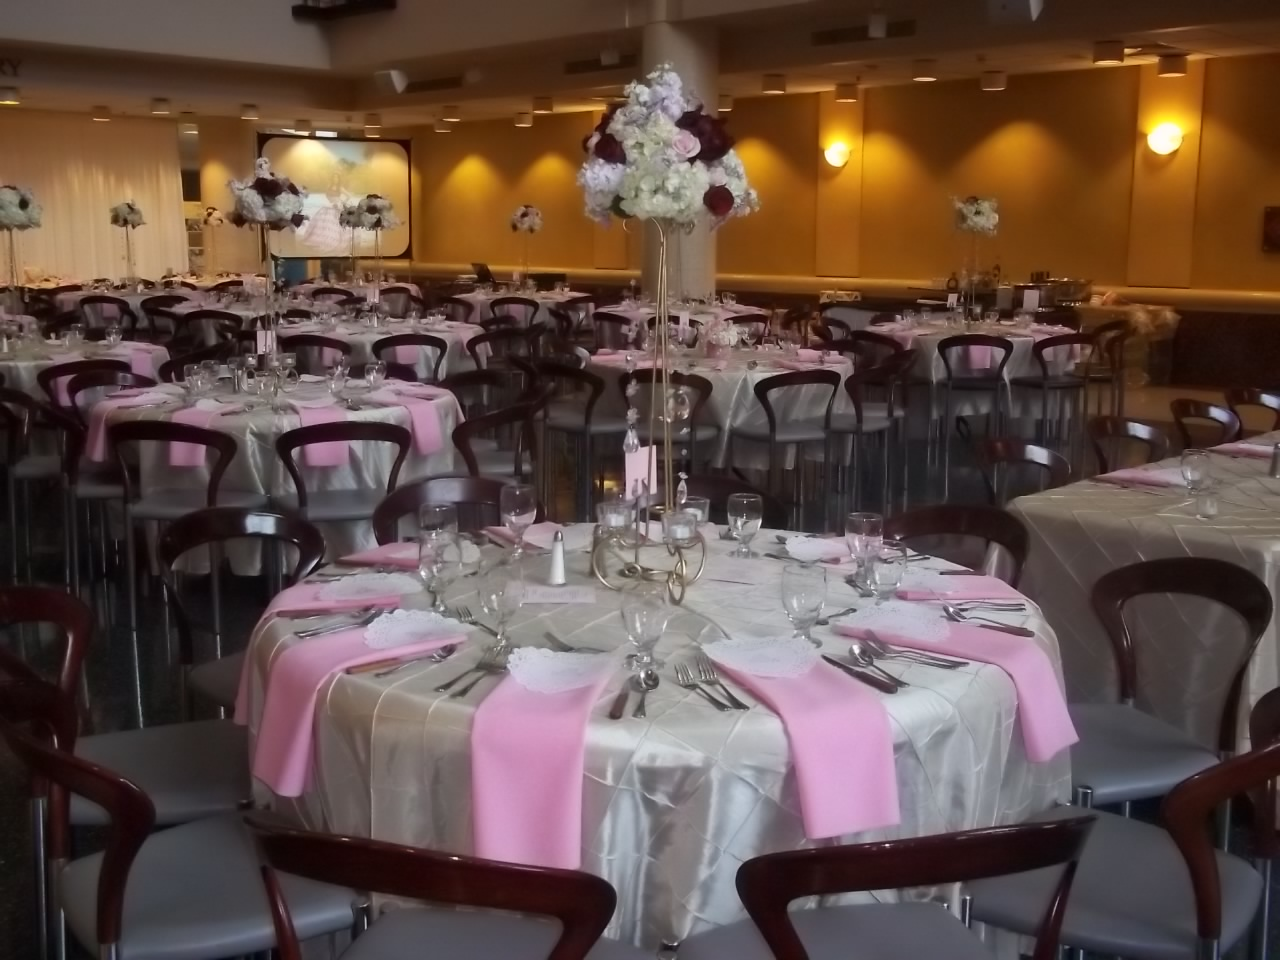 Wedding Table Setup Hannibals Catering Events Sacramento CA - Catering table setting